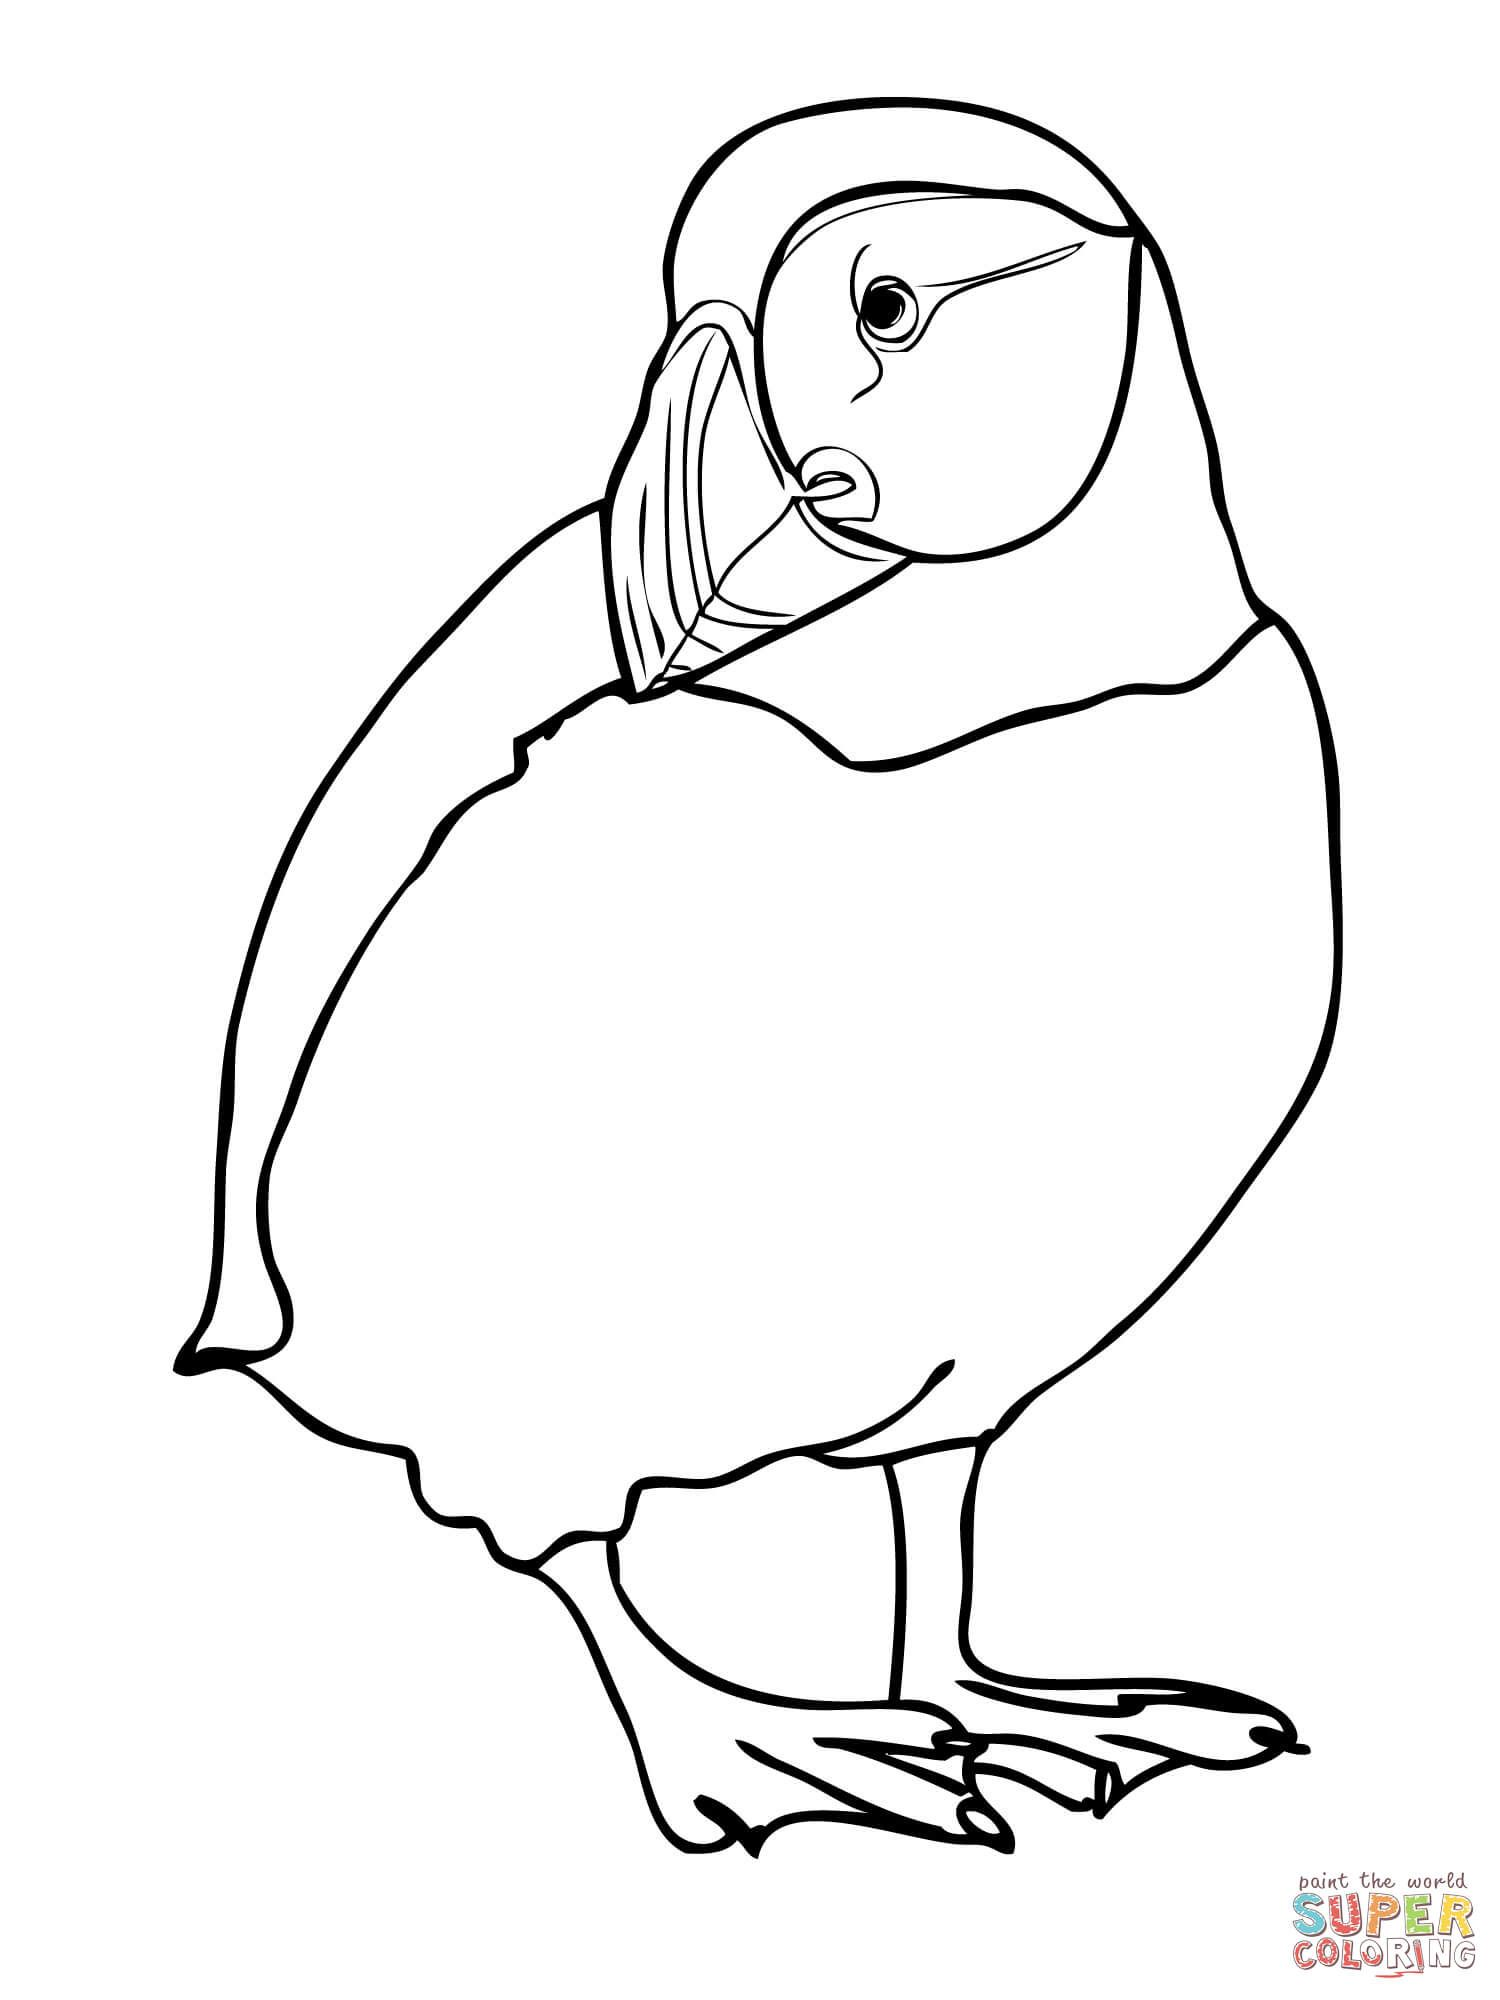 how to draw a puffin how to draw a puffin draw a how puffin to